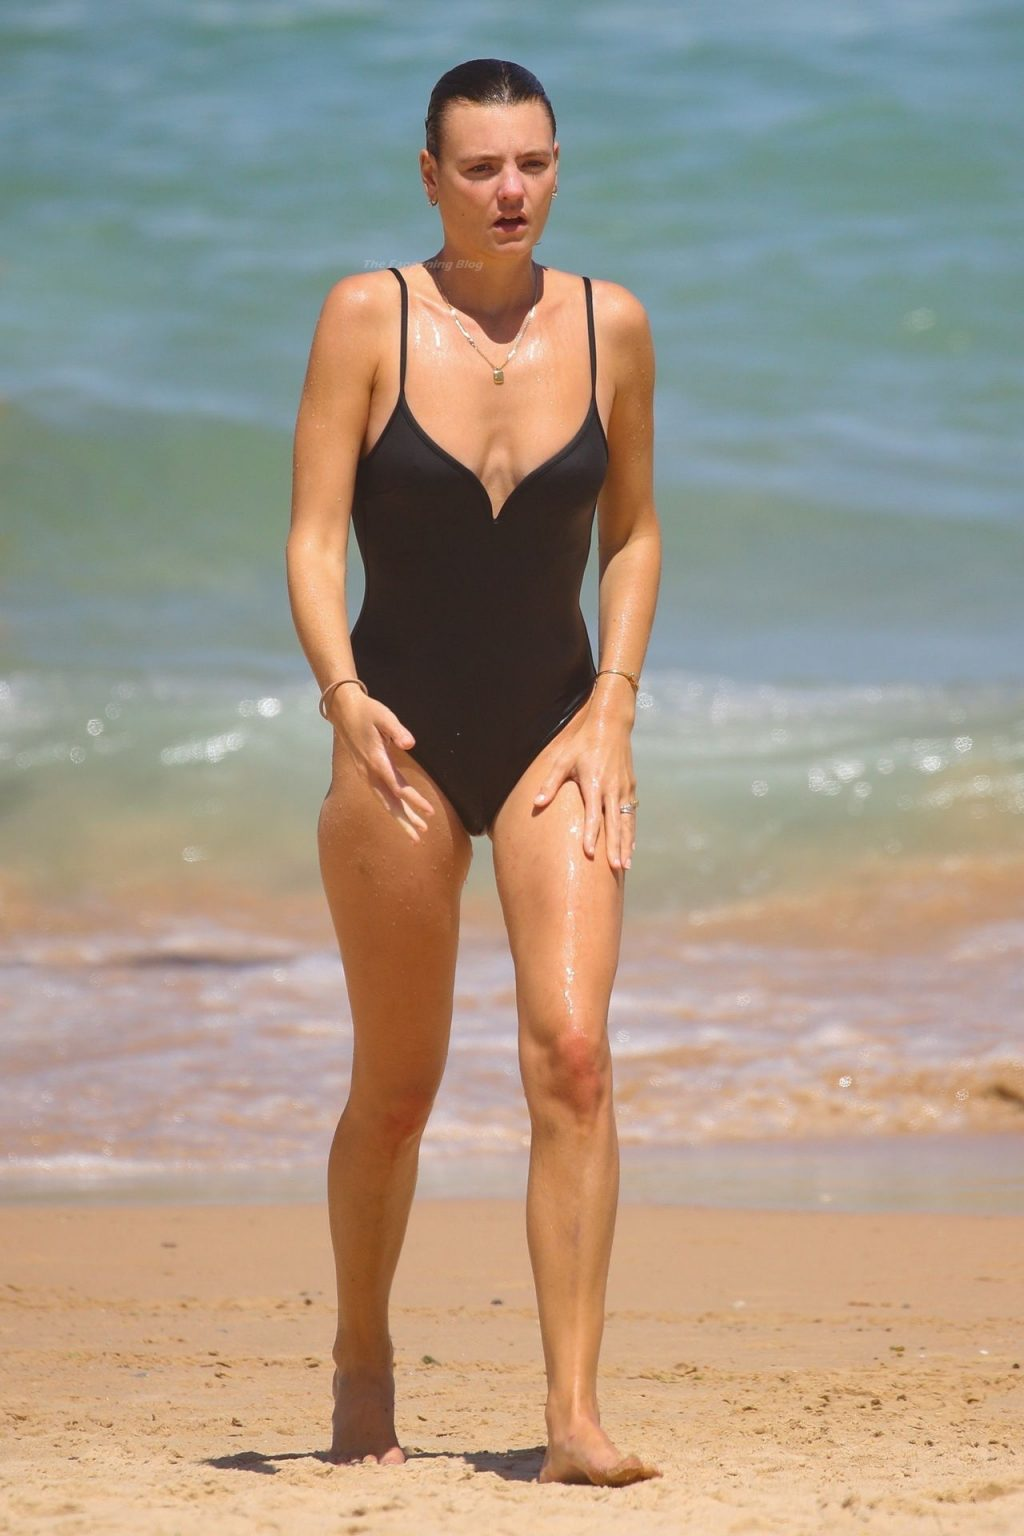 Montana Cox Shows Off Her Nude Tits on the Beach in Sydney (37 Photos)